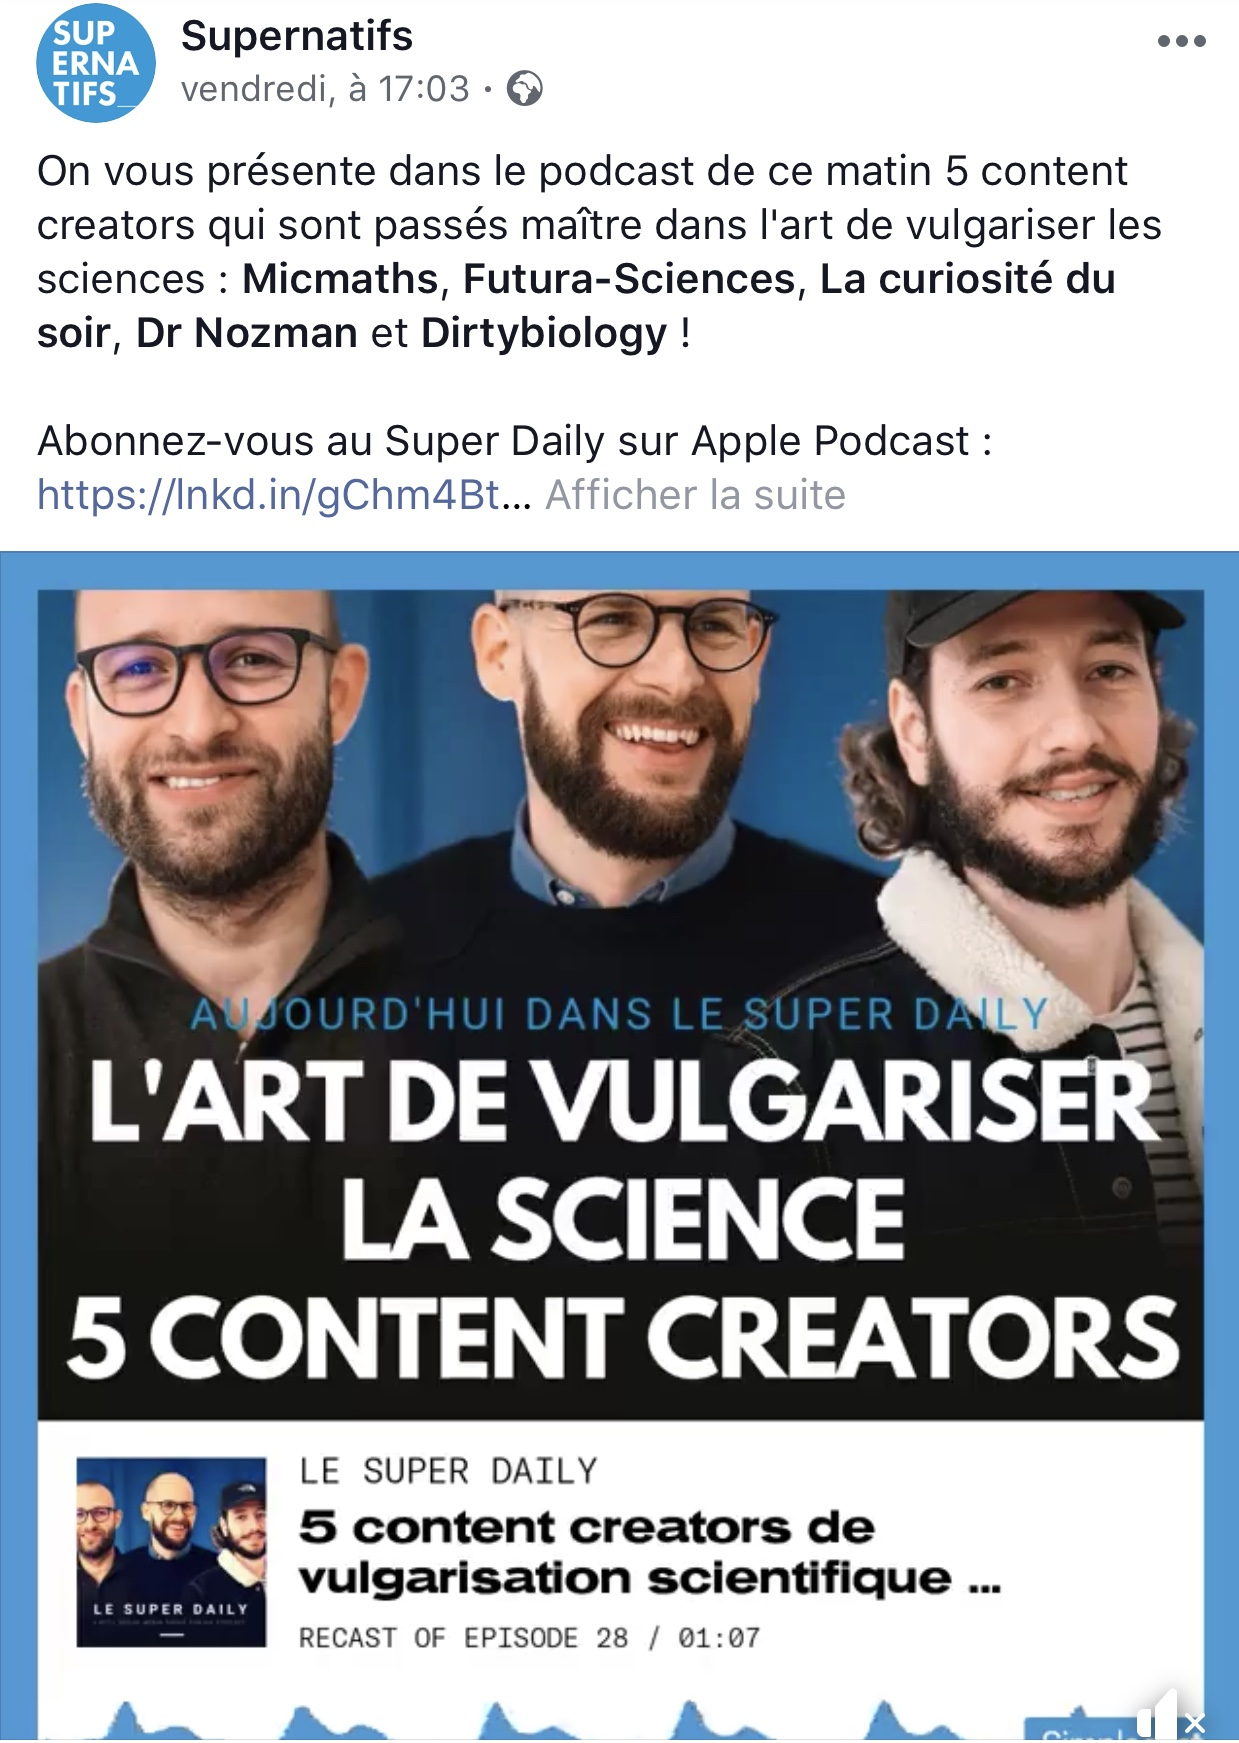 Le Super Daily Podcast Facebook 3